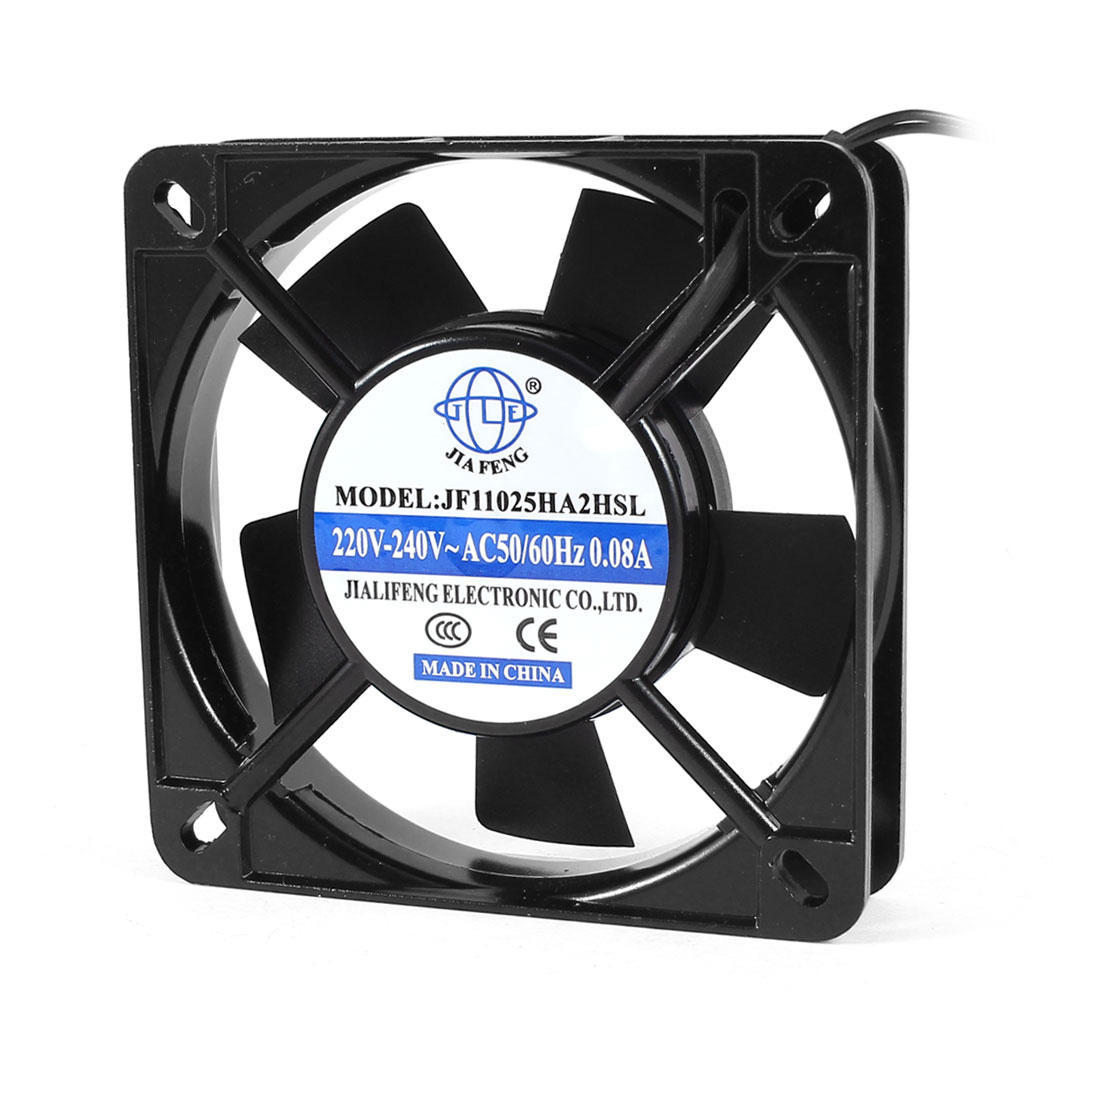 AC 220V-240V 0.08A 110mmx25mm Plastic 5 Flabellums Cooling Fan for Computer Case CPU Cooler